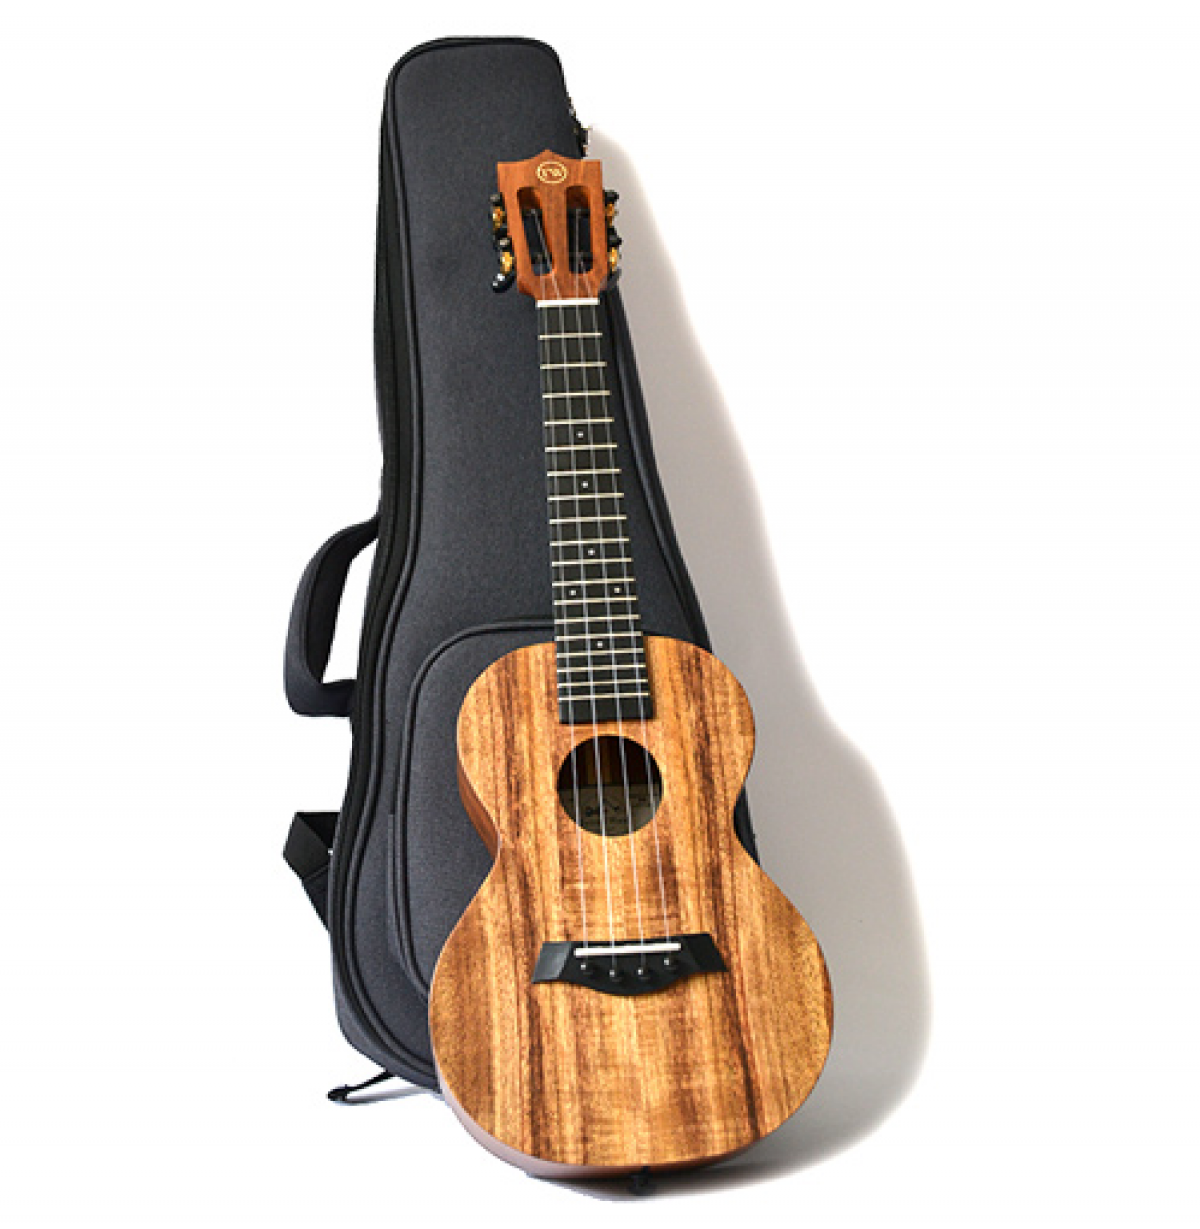 Twisted Wood Koa Ukulele - KO1000 with gig bag